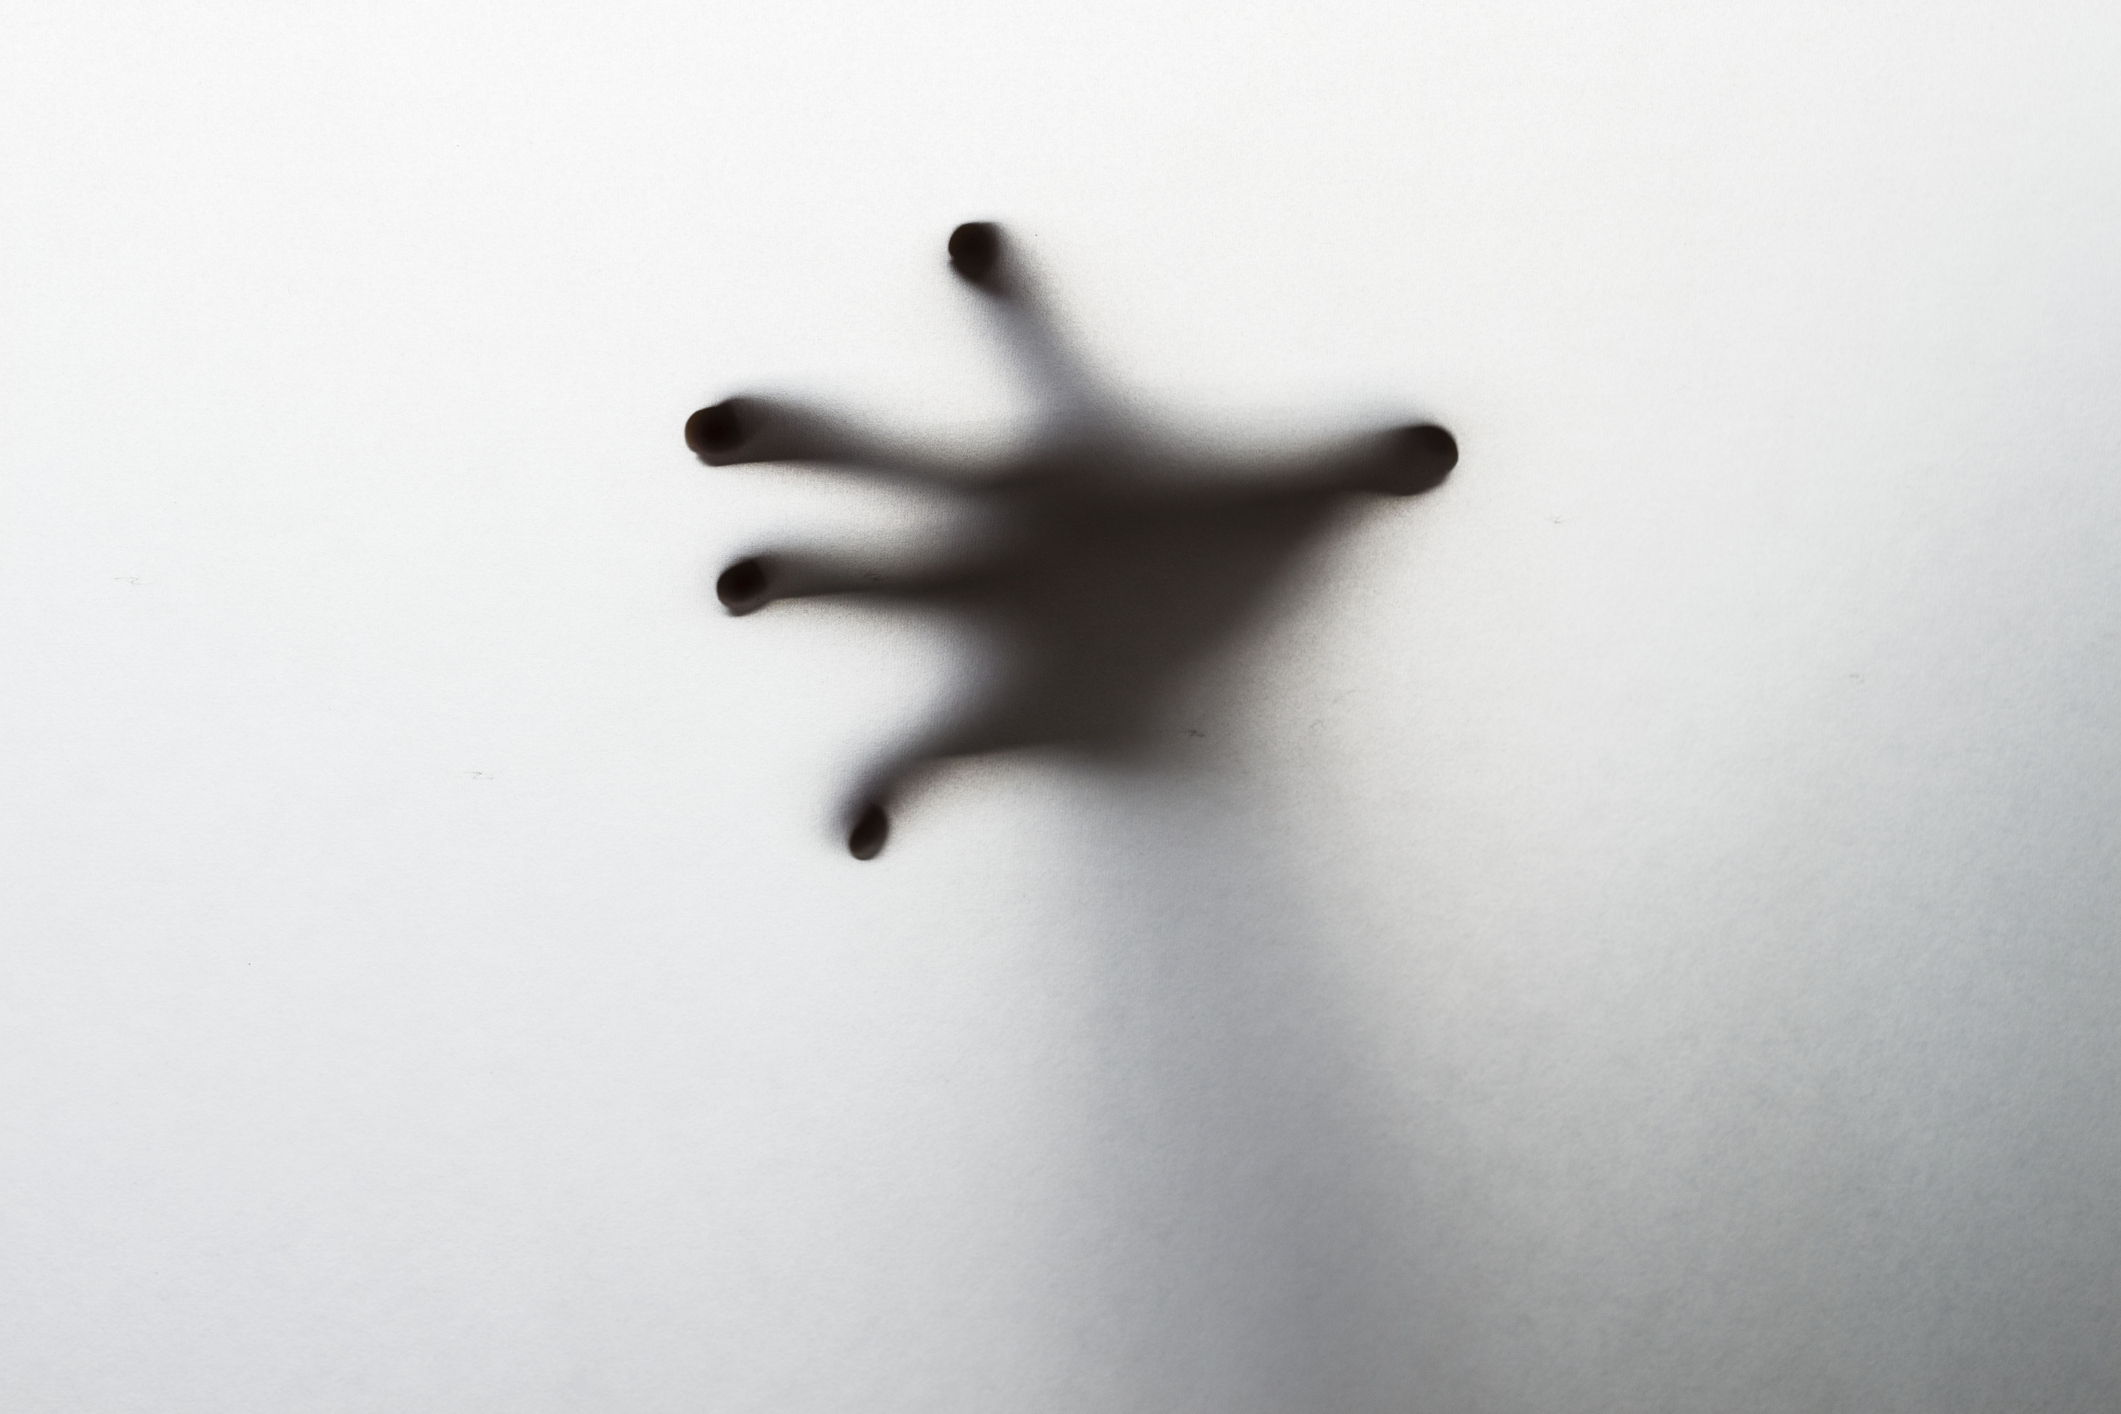 Learn more about Alien Hand Syndrome